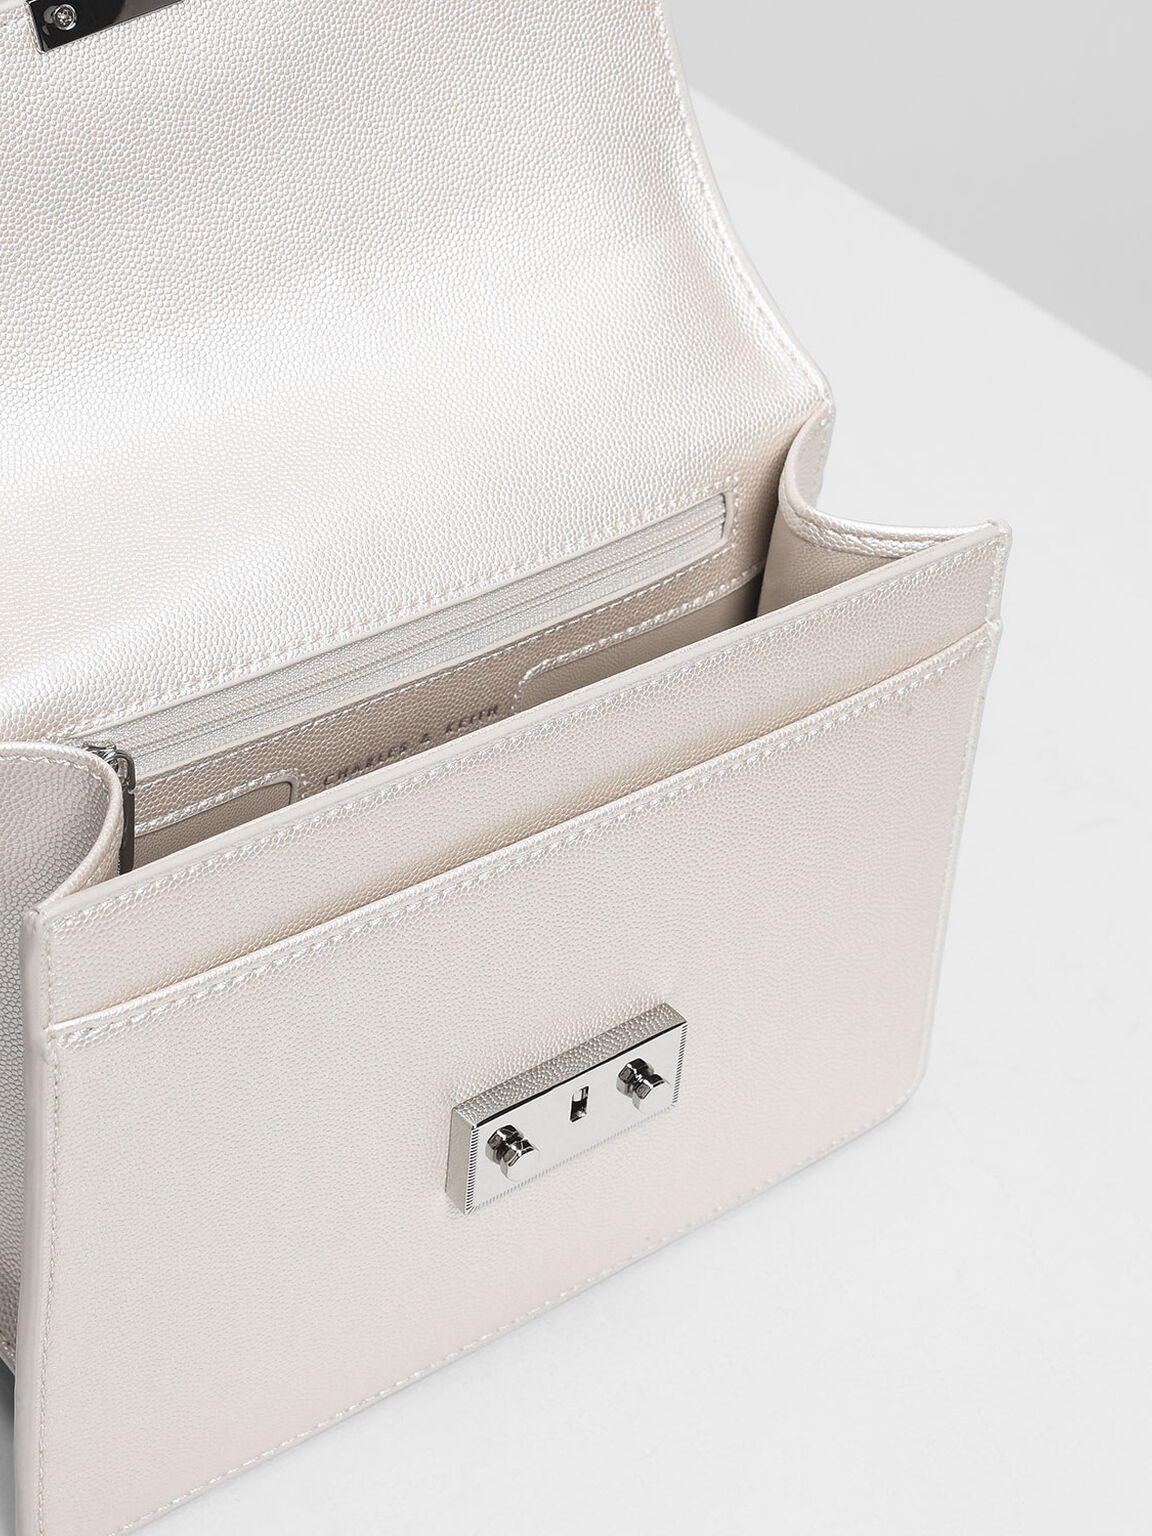 Push Lock Front Flap Bag, Pearl, hi-res